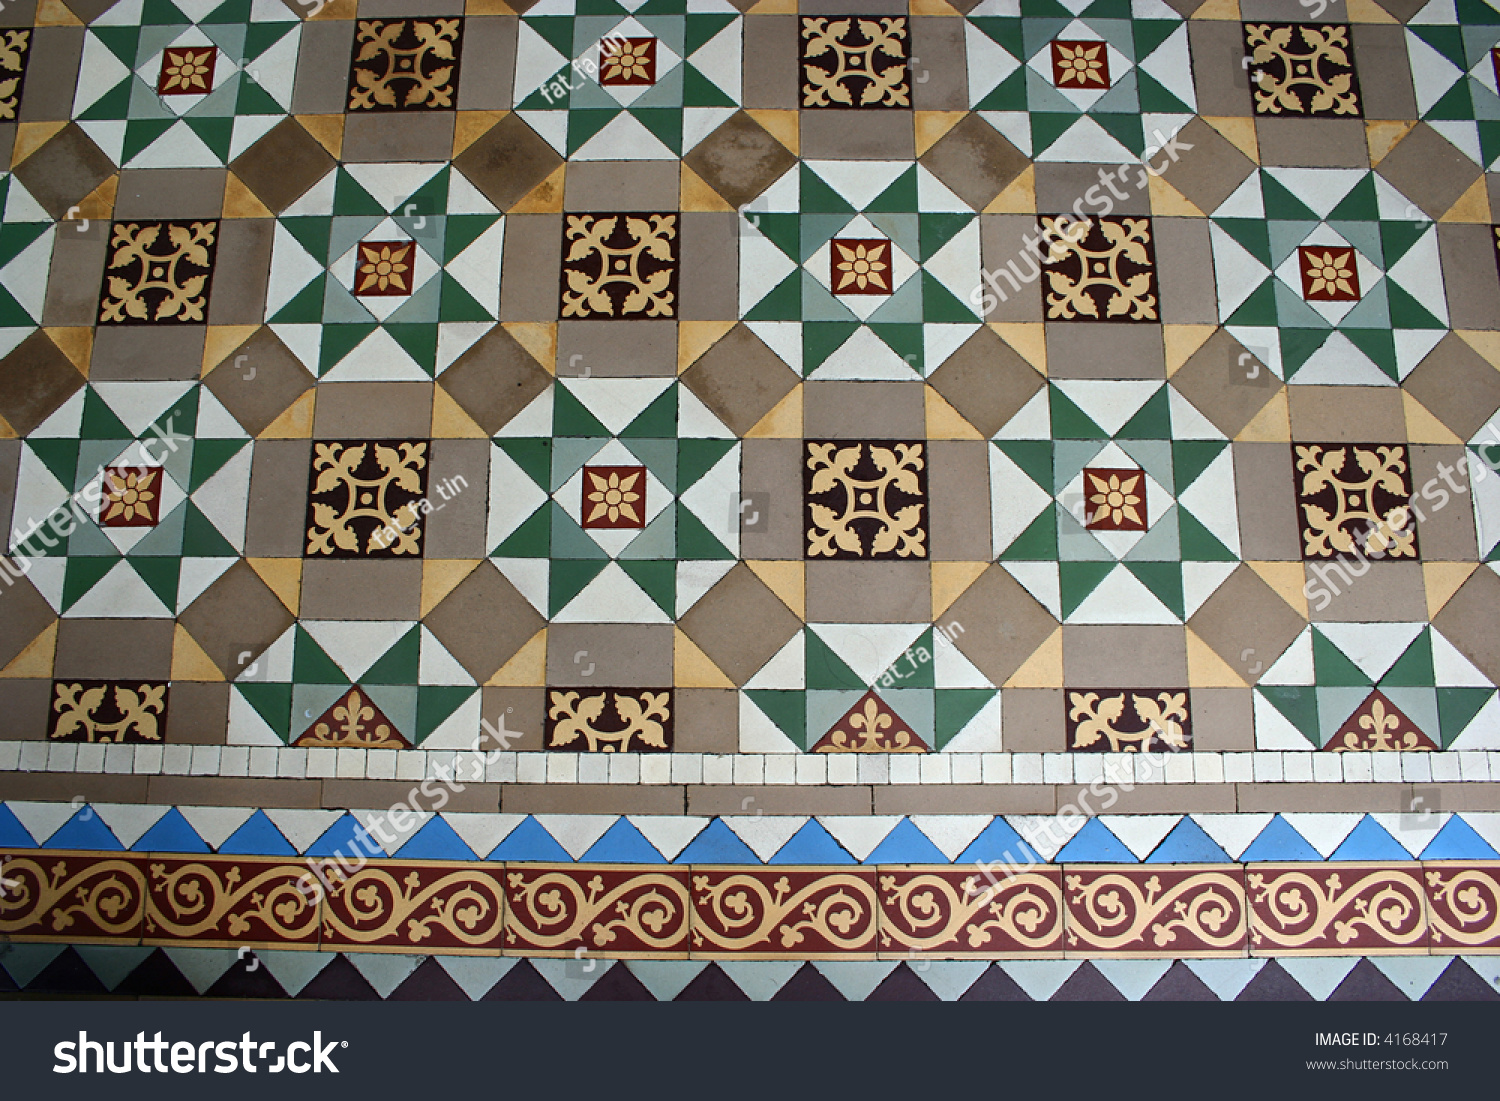 Old vintage floor tiles pattern 2 stock photo 4168417 shutterstock old vintage floor tiles pattern 2 doublecrazyfo Image collections